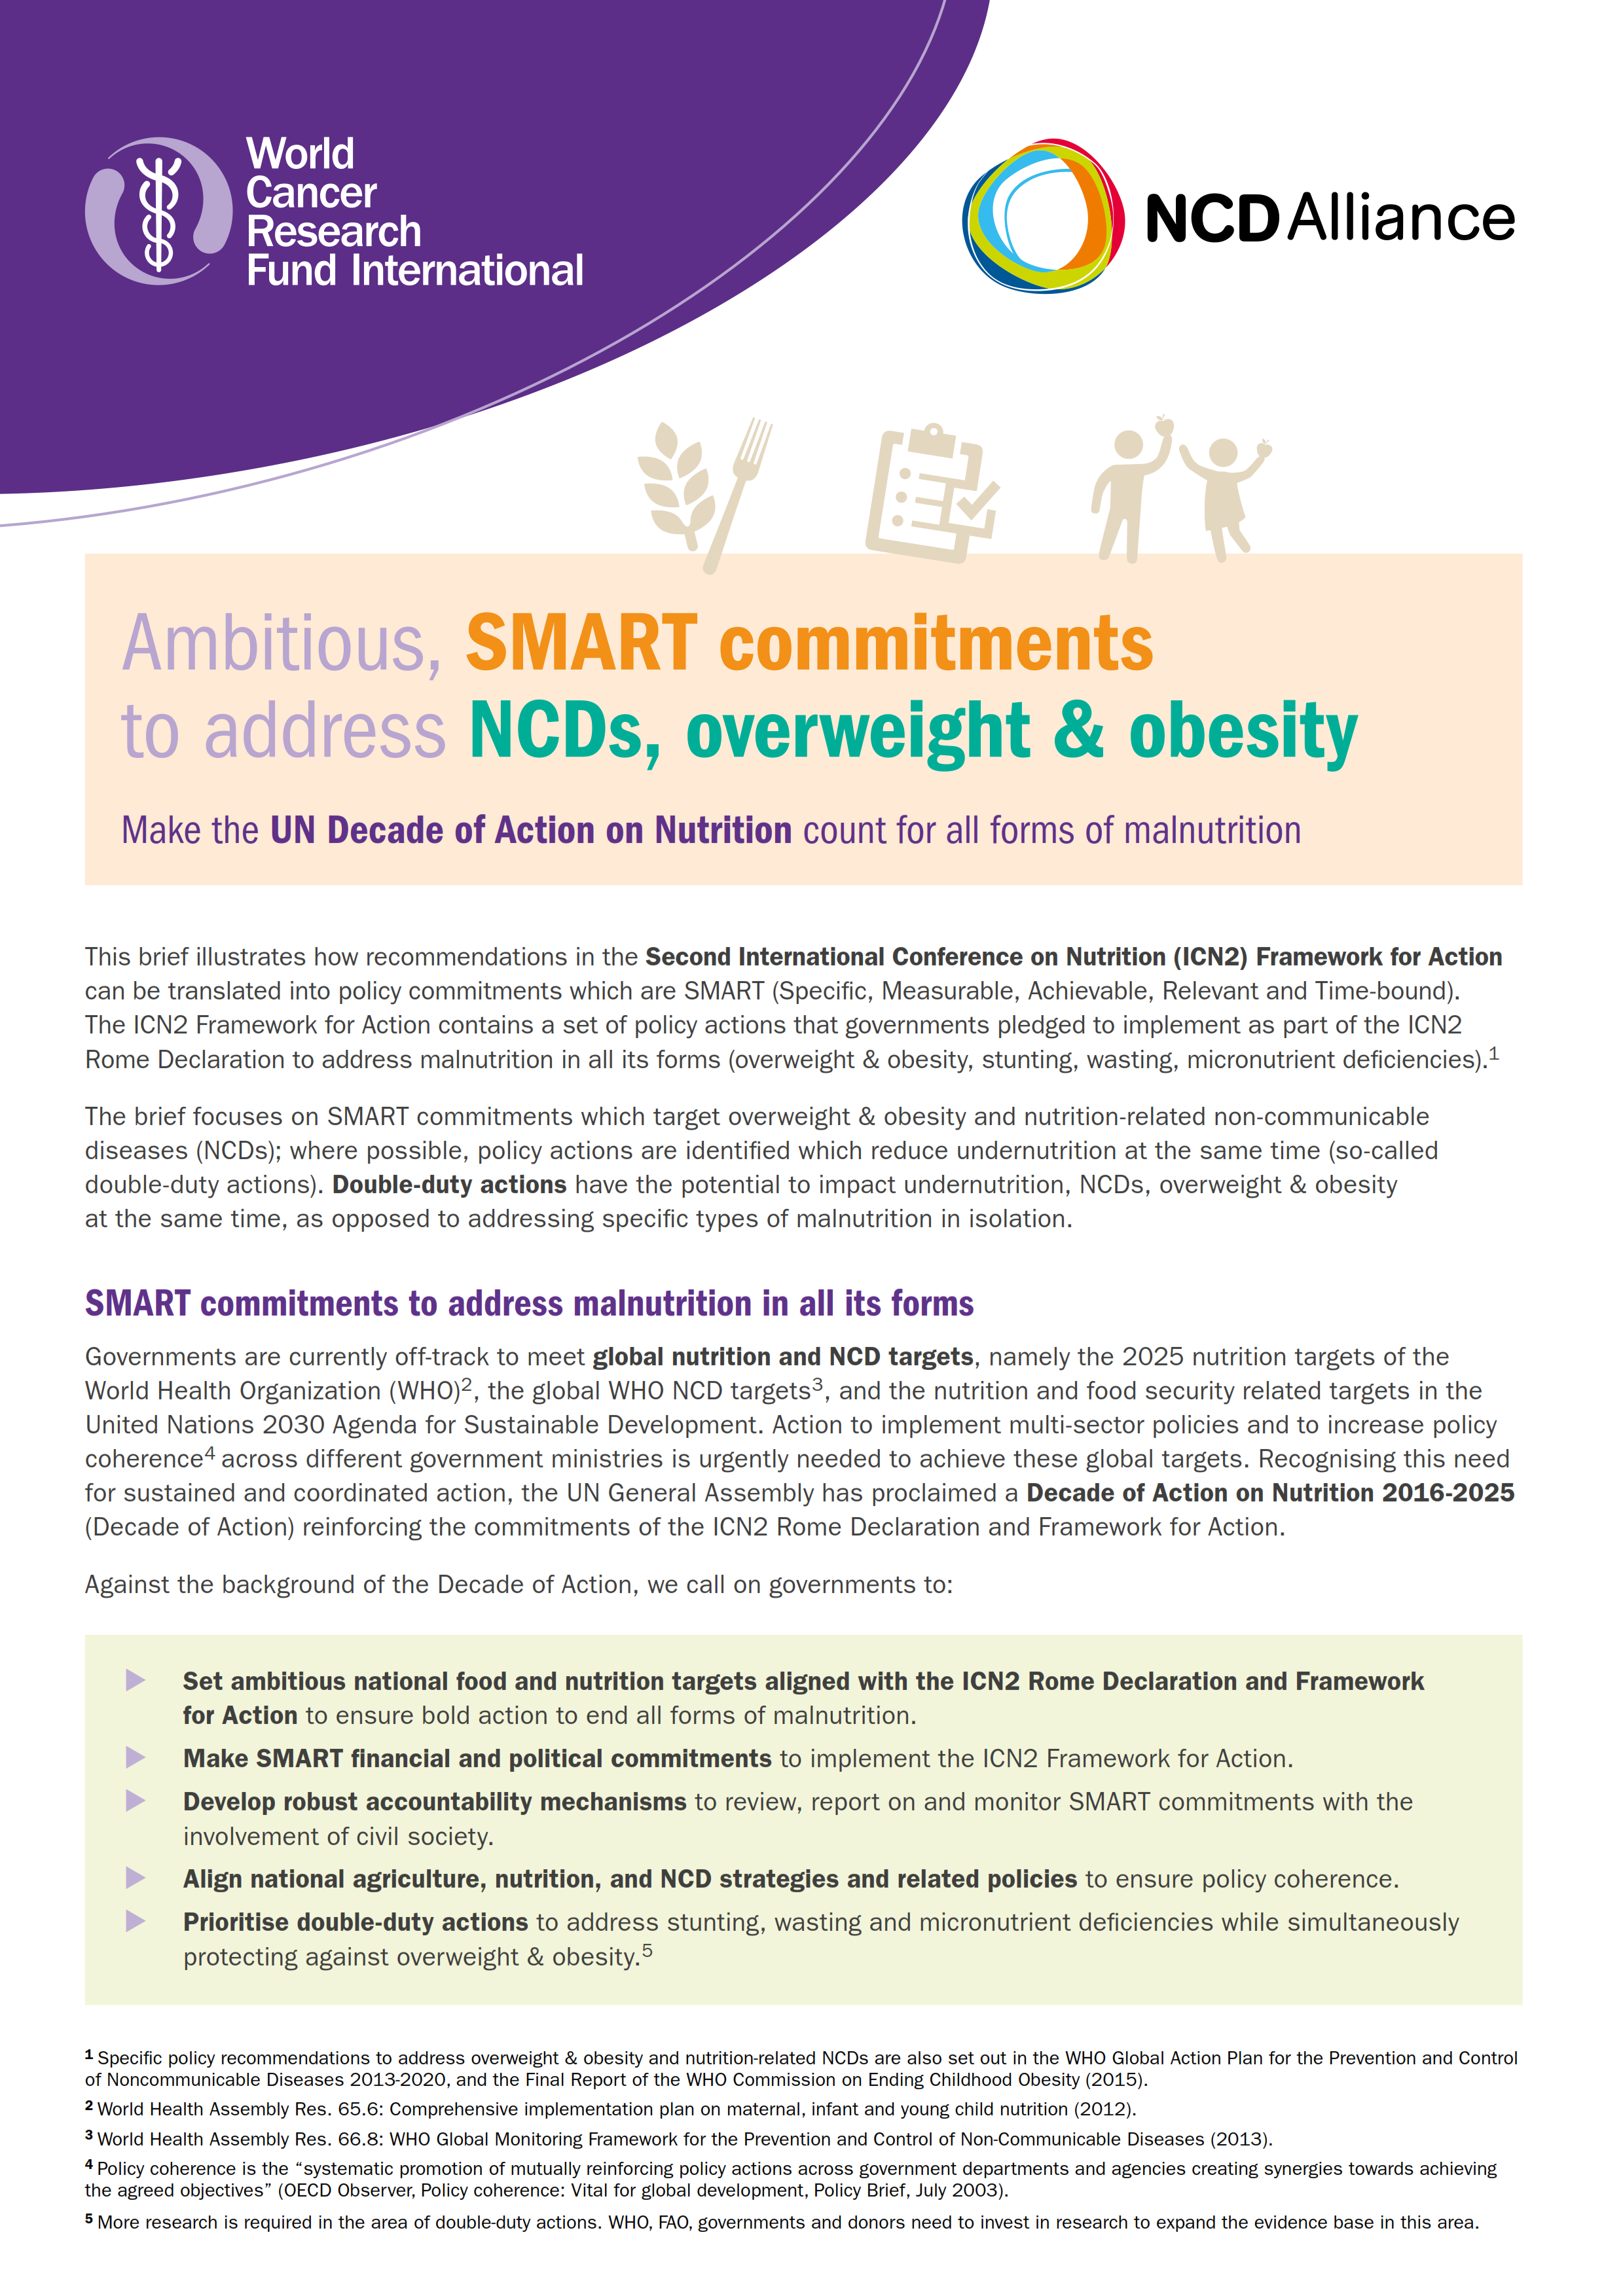 Guidance on developing SMART commitments to address NCDs, overweight